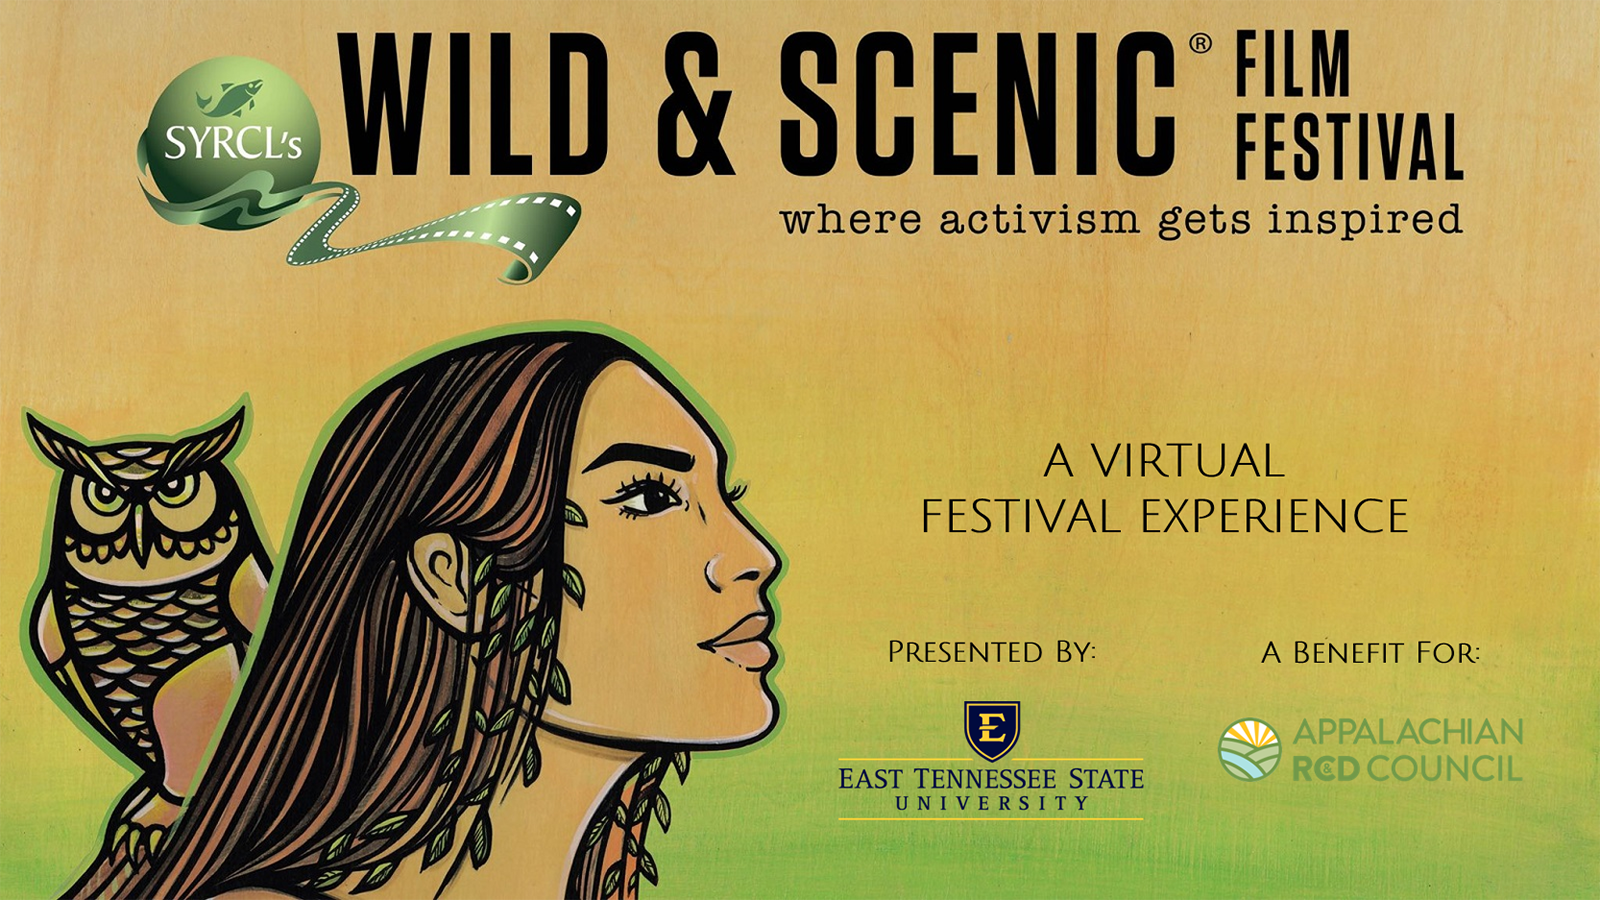 East Tennessee State University Presents SYRCL's Wild & Scenic Film Festival On Tour